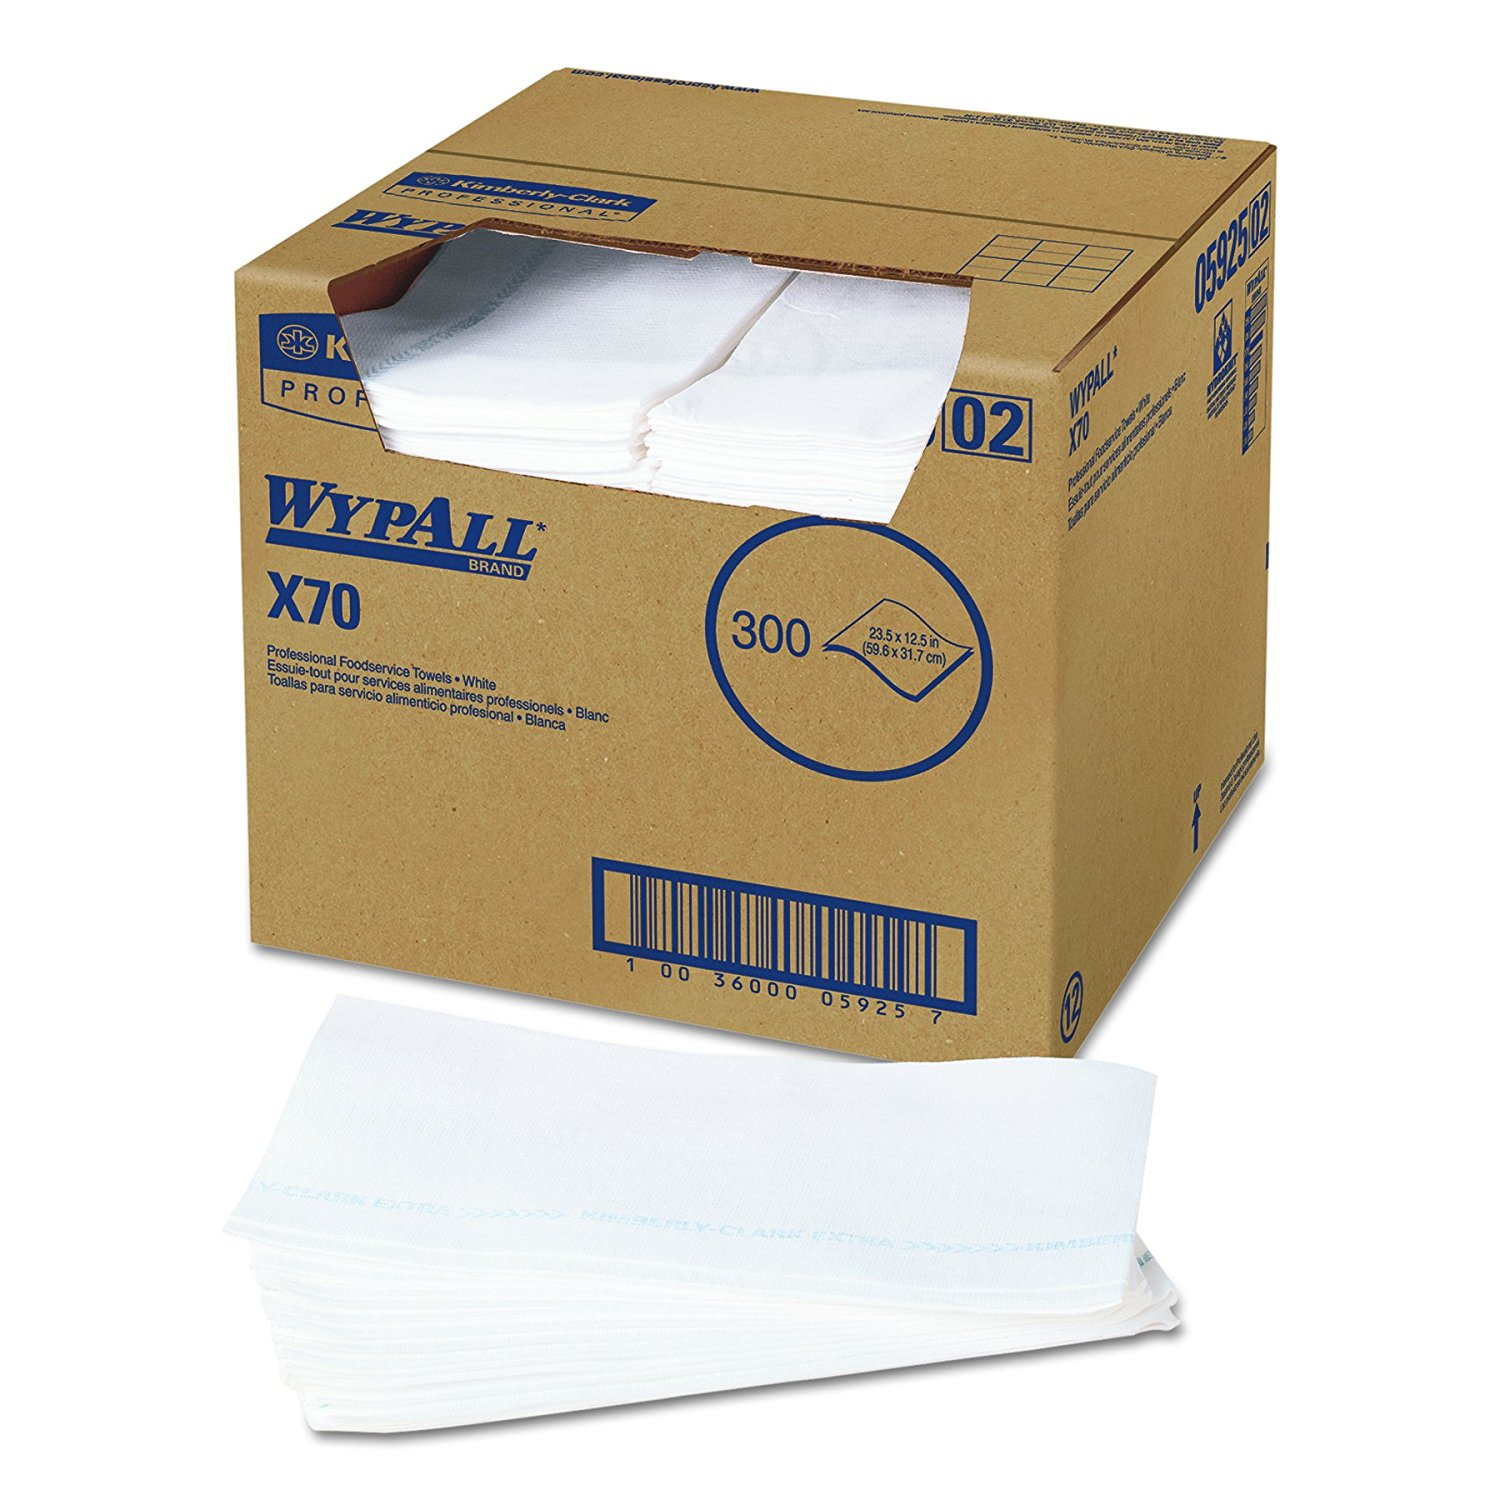 WypAll 05925 X70 Wipers, For Foodservice,12 1/2w x 23 1/2d,White, (Case of 300)